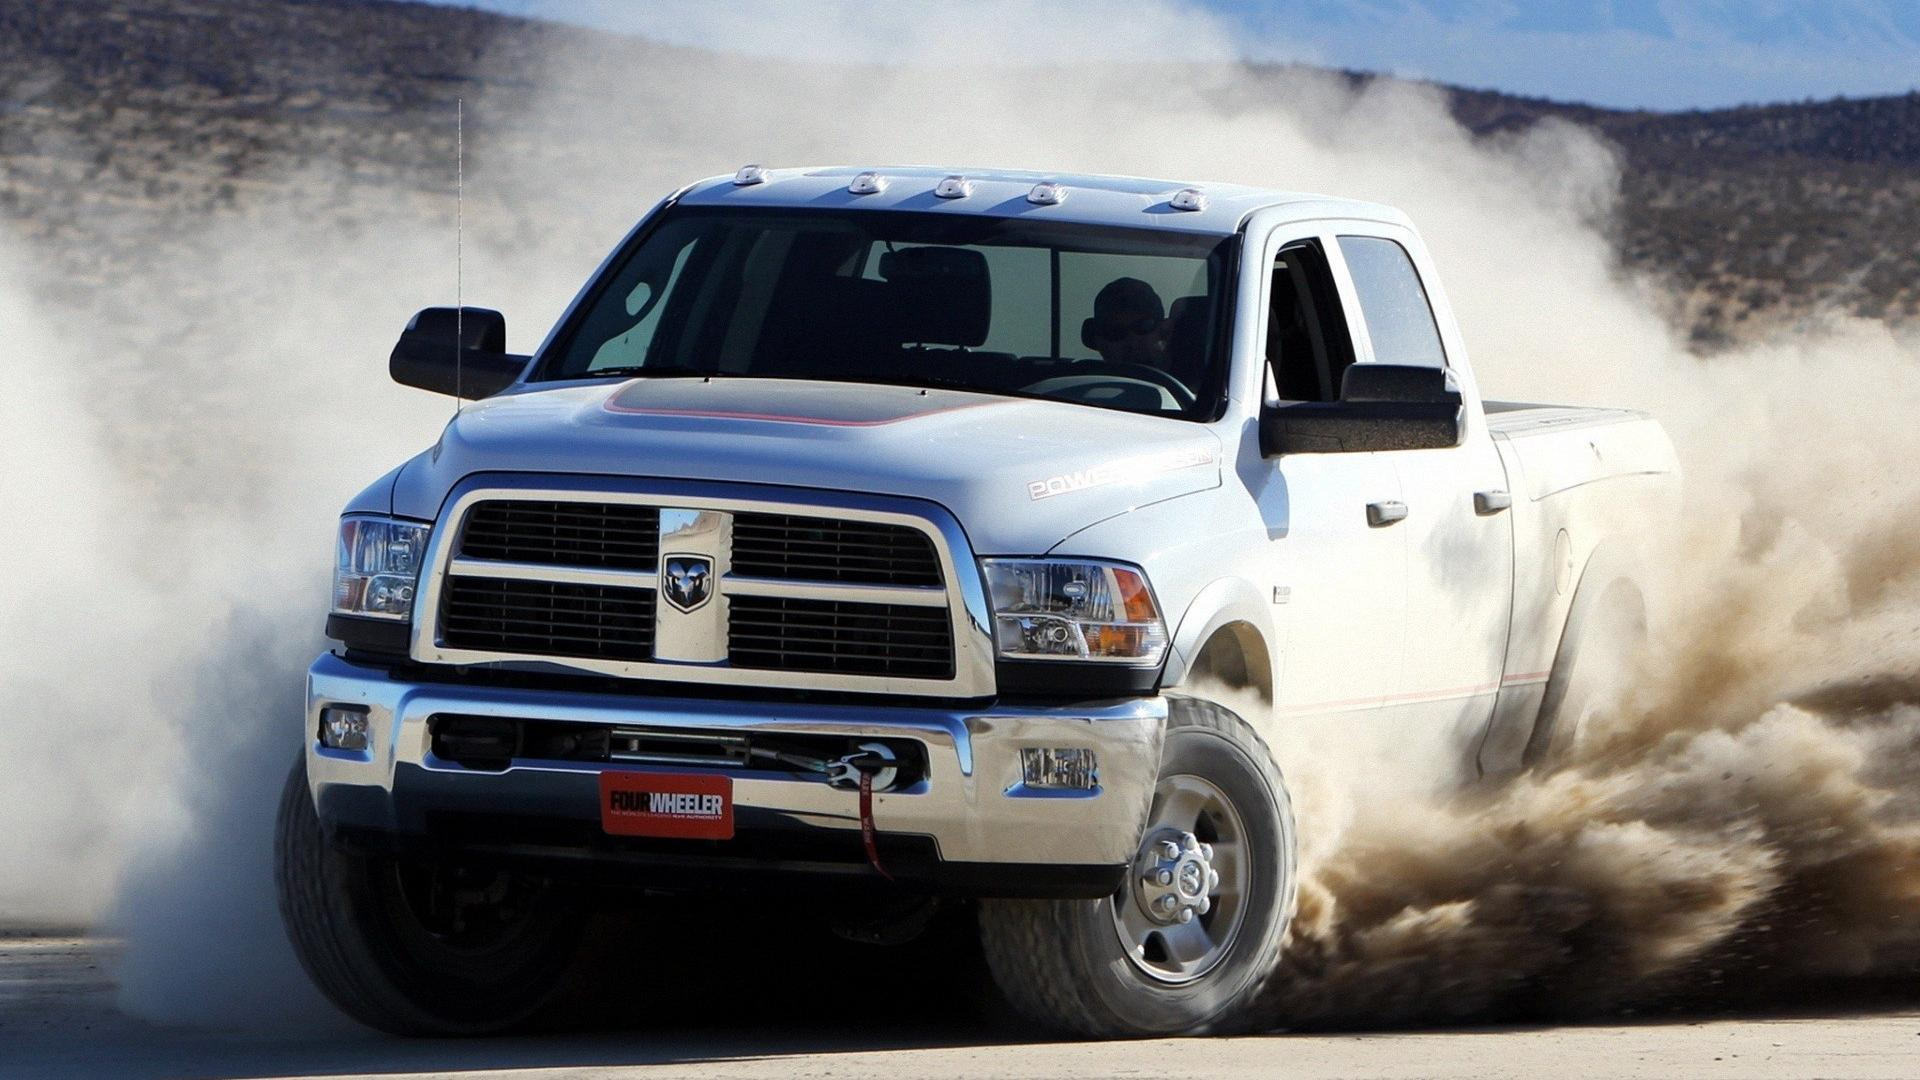 2015 Ram 2500 >> Pickup Truck Wallpaper - WallpaperSafari